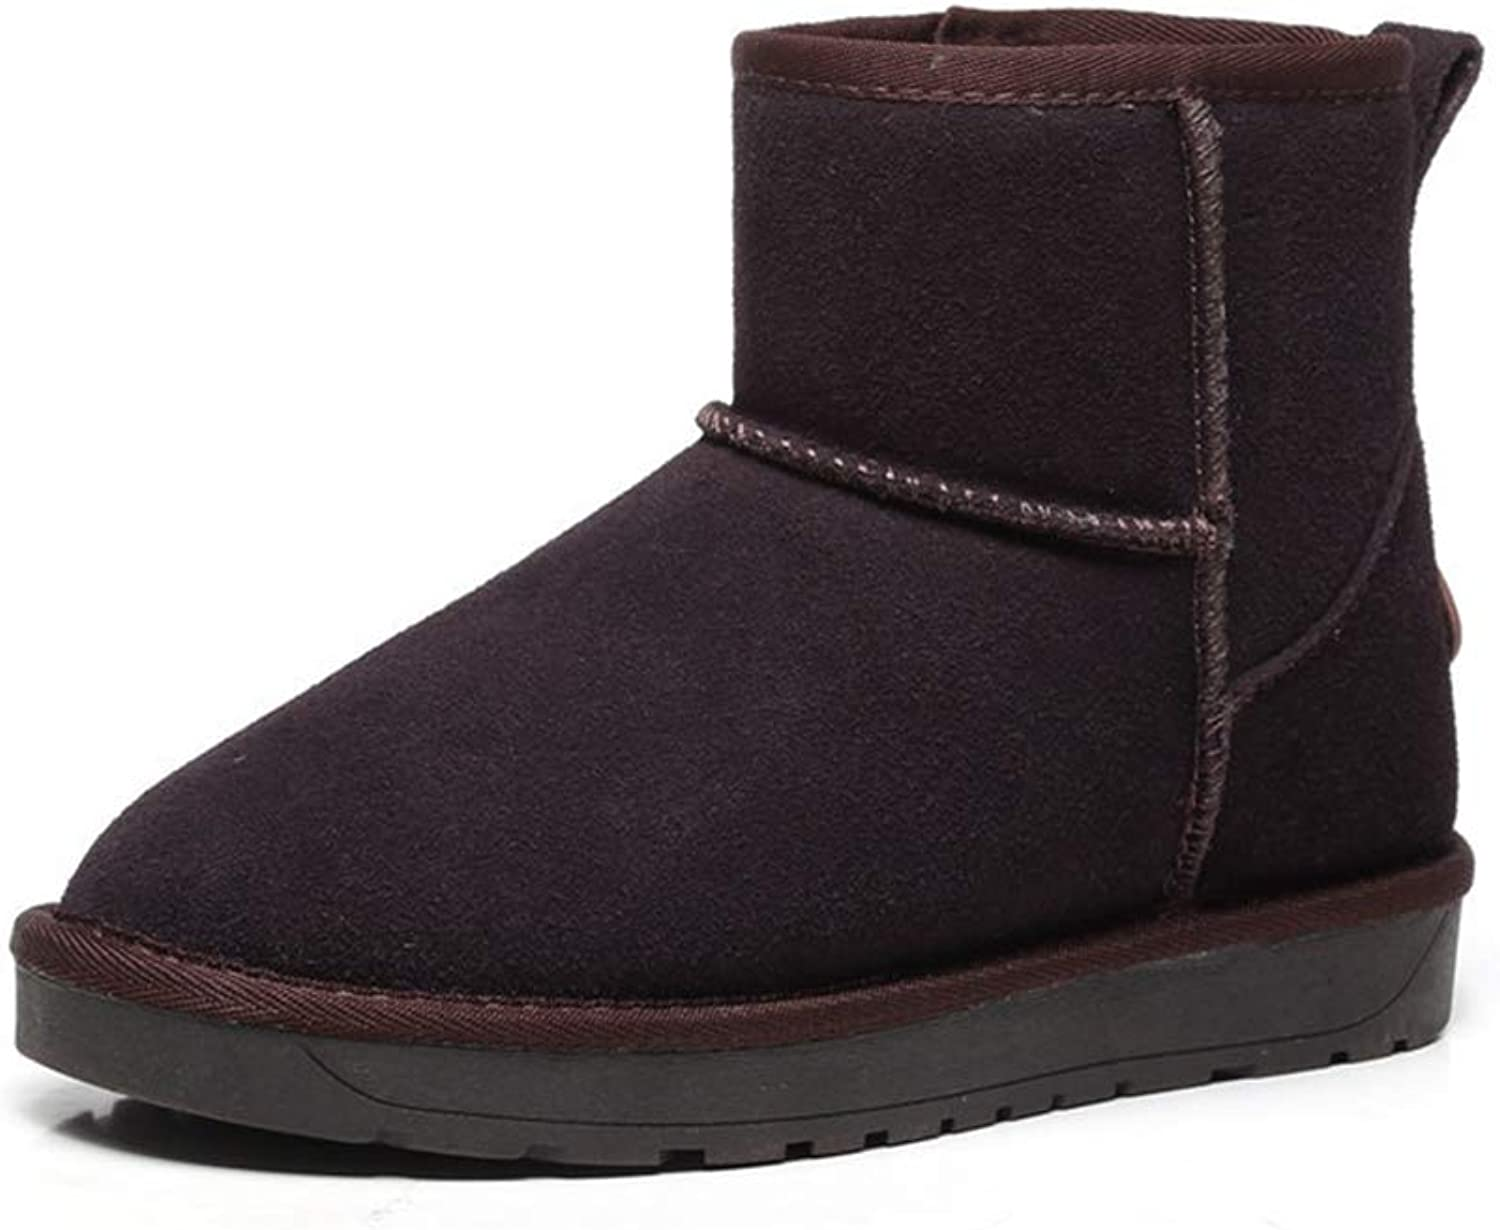 Kyle Walsh Pa Women Classic Snow Boots Hidden Wedge Warm Fur Female Winter Non-Slip Ankle Booties